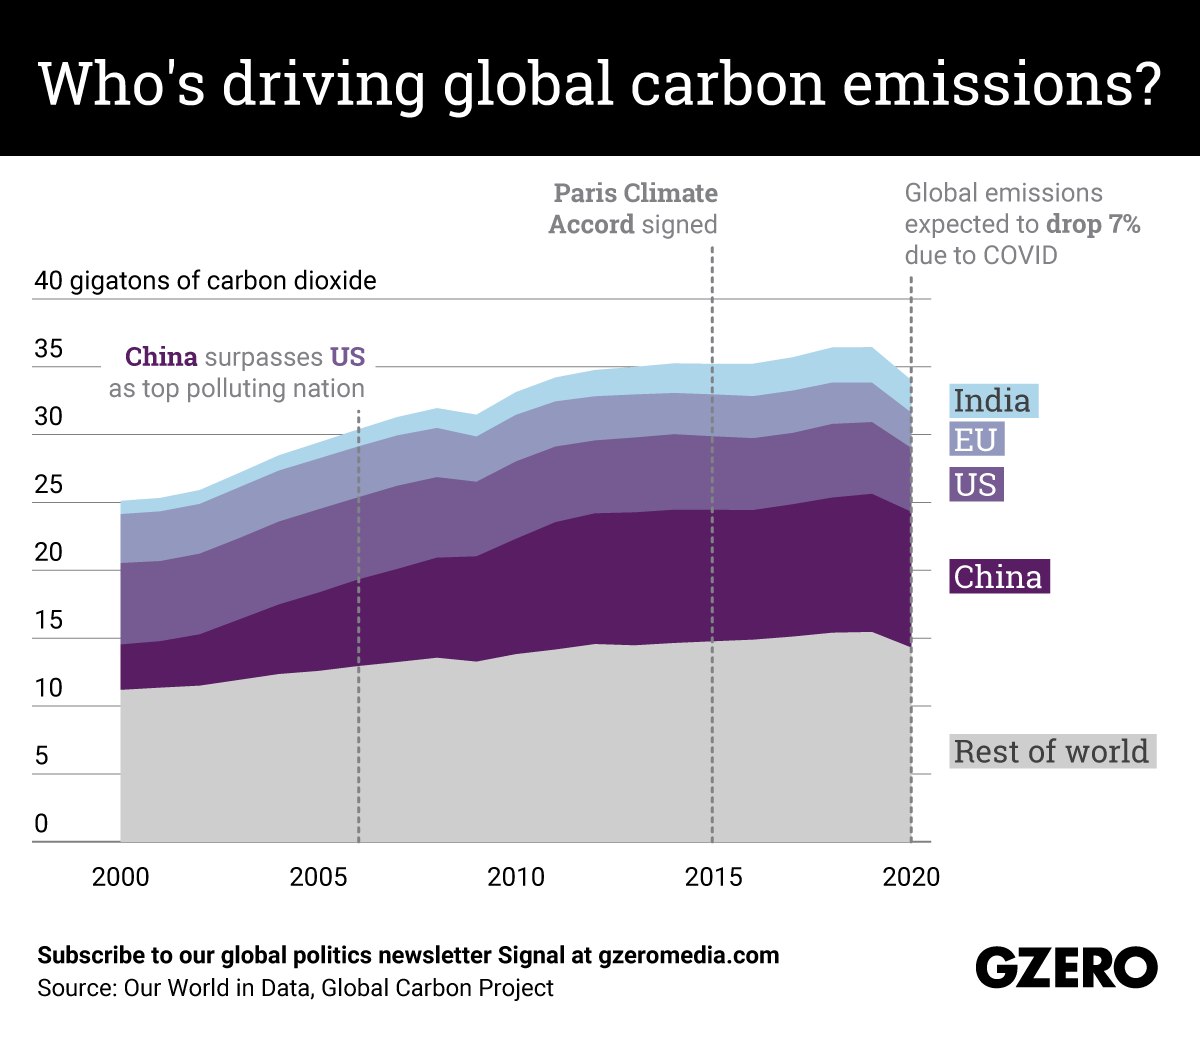 The Graphic Truth: Who's driving global carbon emissions?